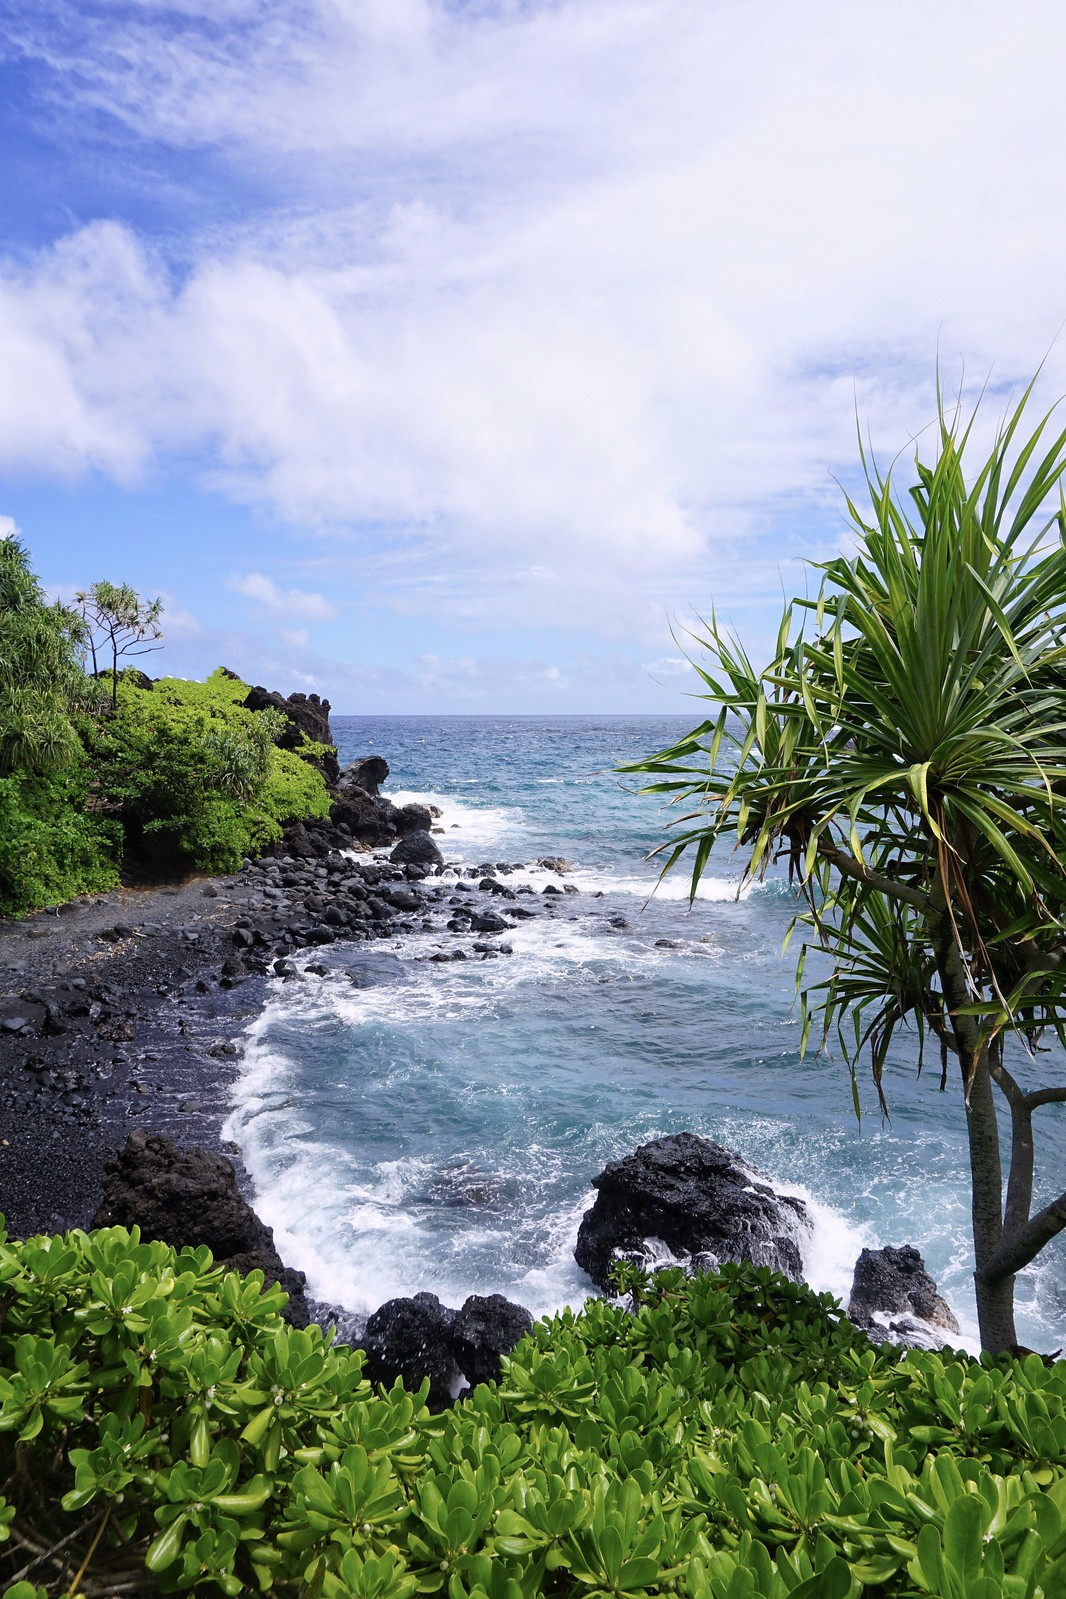 10 Places I Want to Travel After COVID-19 | Places to Travel after Lockdown is Over | Travel Aesthetic | Hawaii Aesthetic | Maui, Hawaii |  Best Hawaiian Beaches | Black Sand Beach | Road to Hana